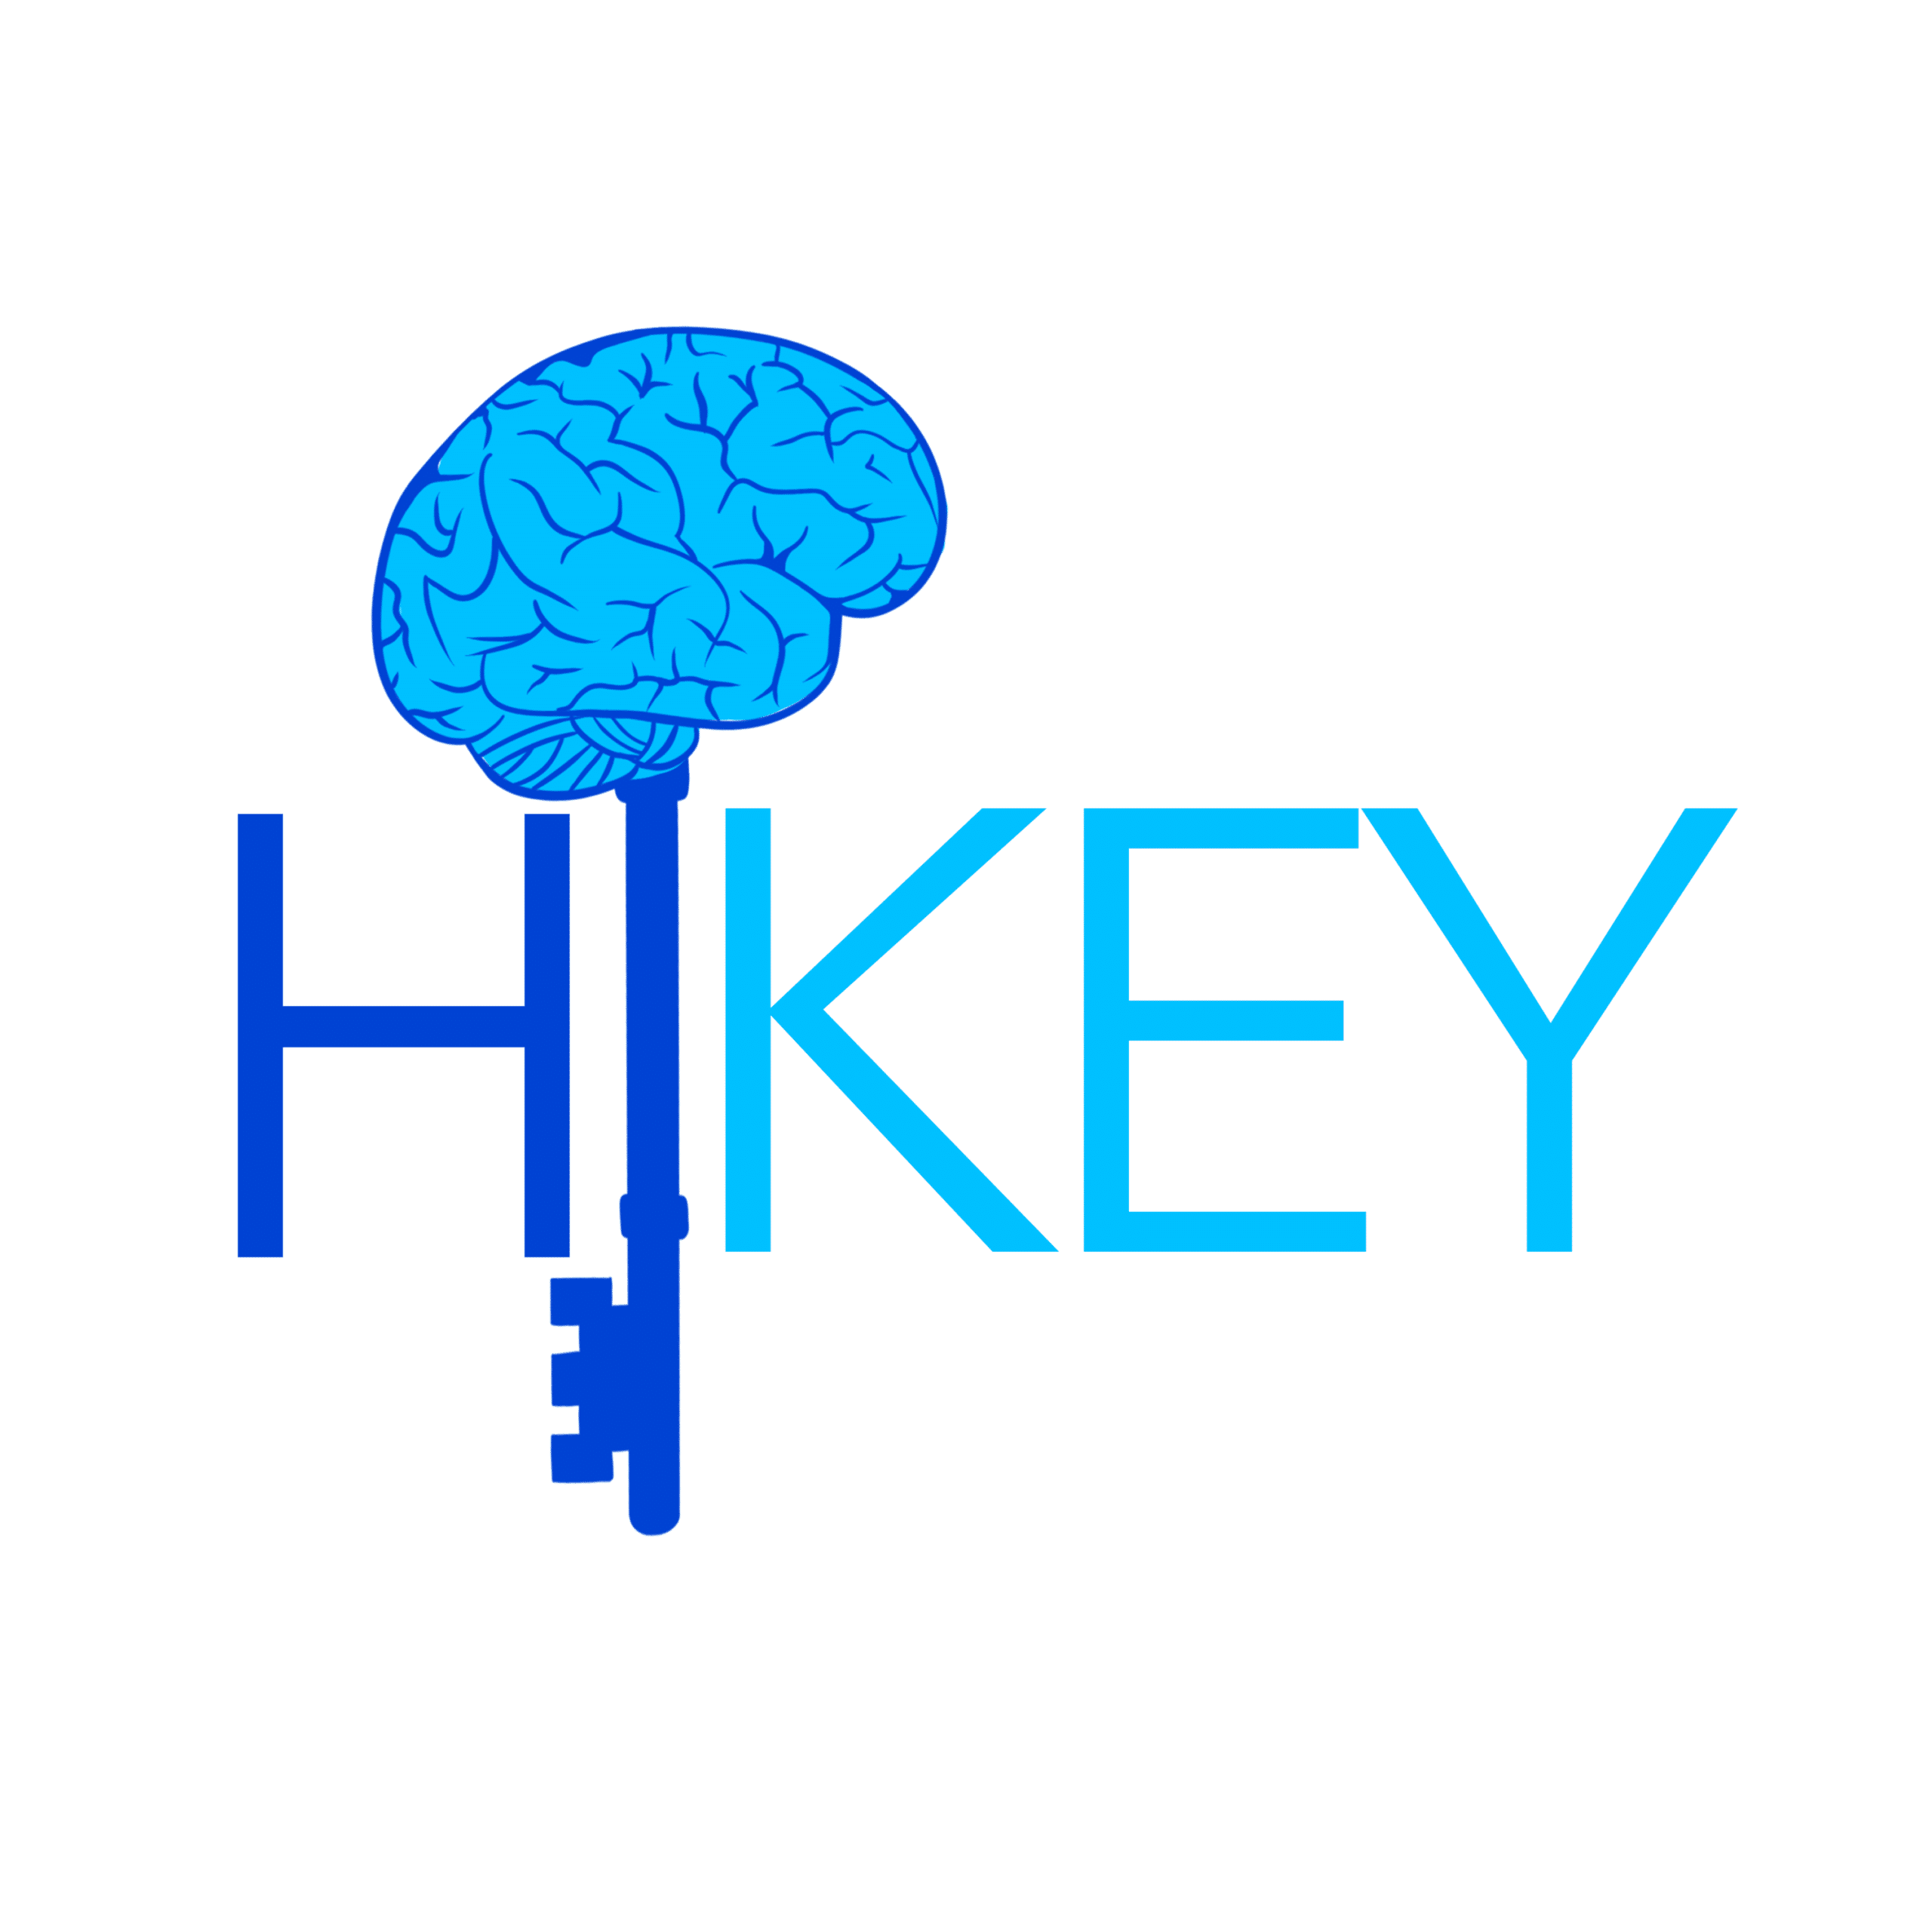 Hikey Solutions